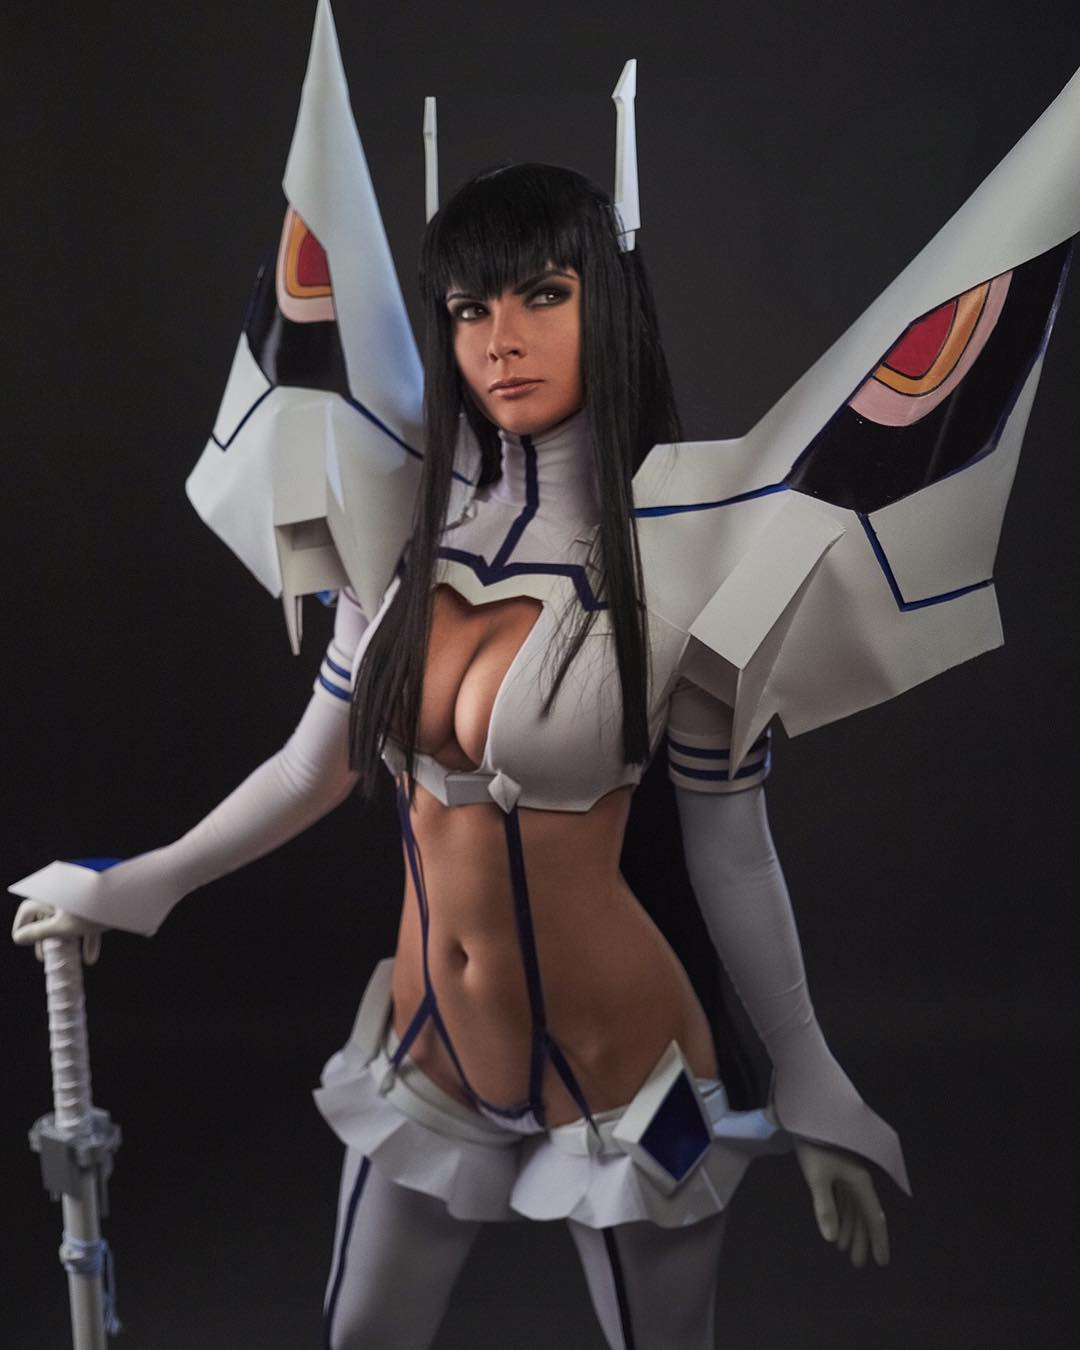 Jannet Incosplay Sexy Boobs Pictures on Cosplay Dress